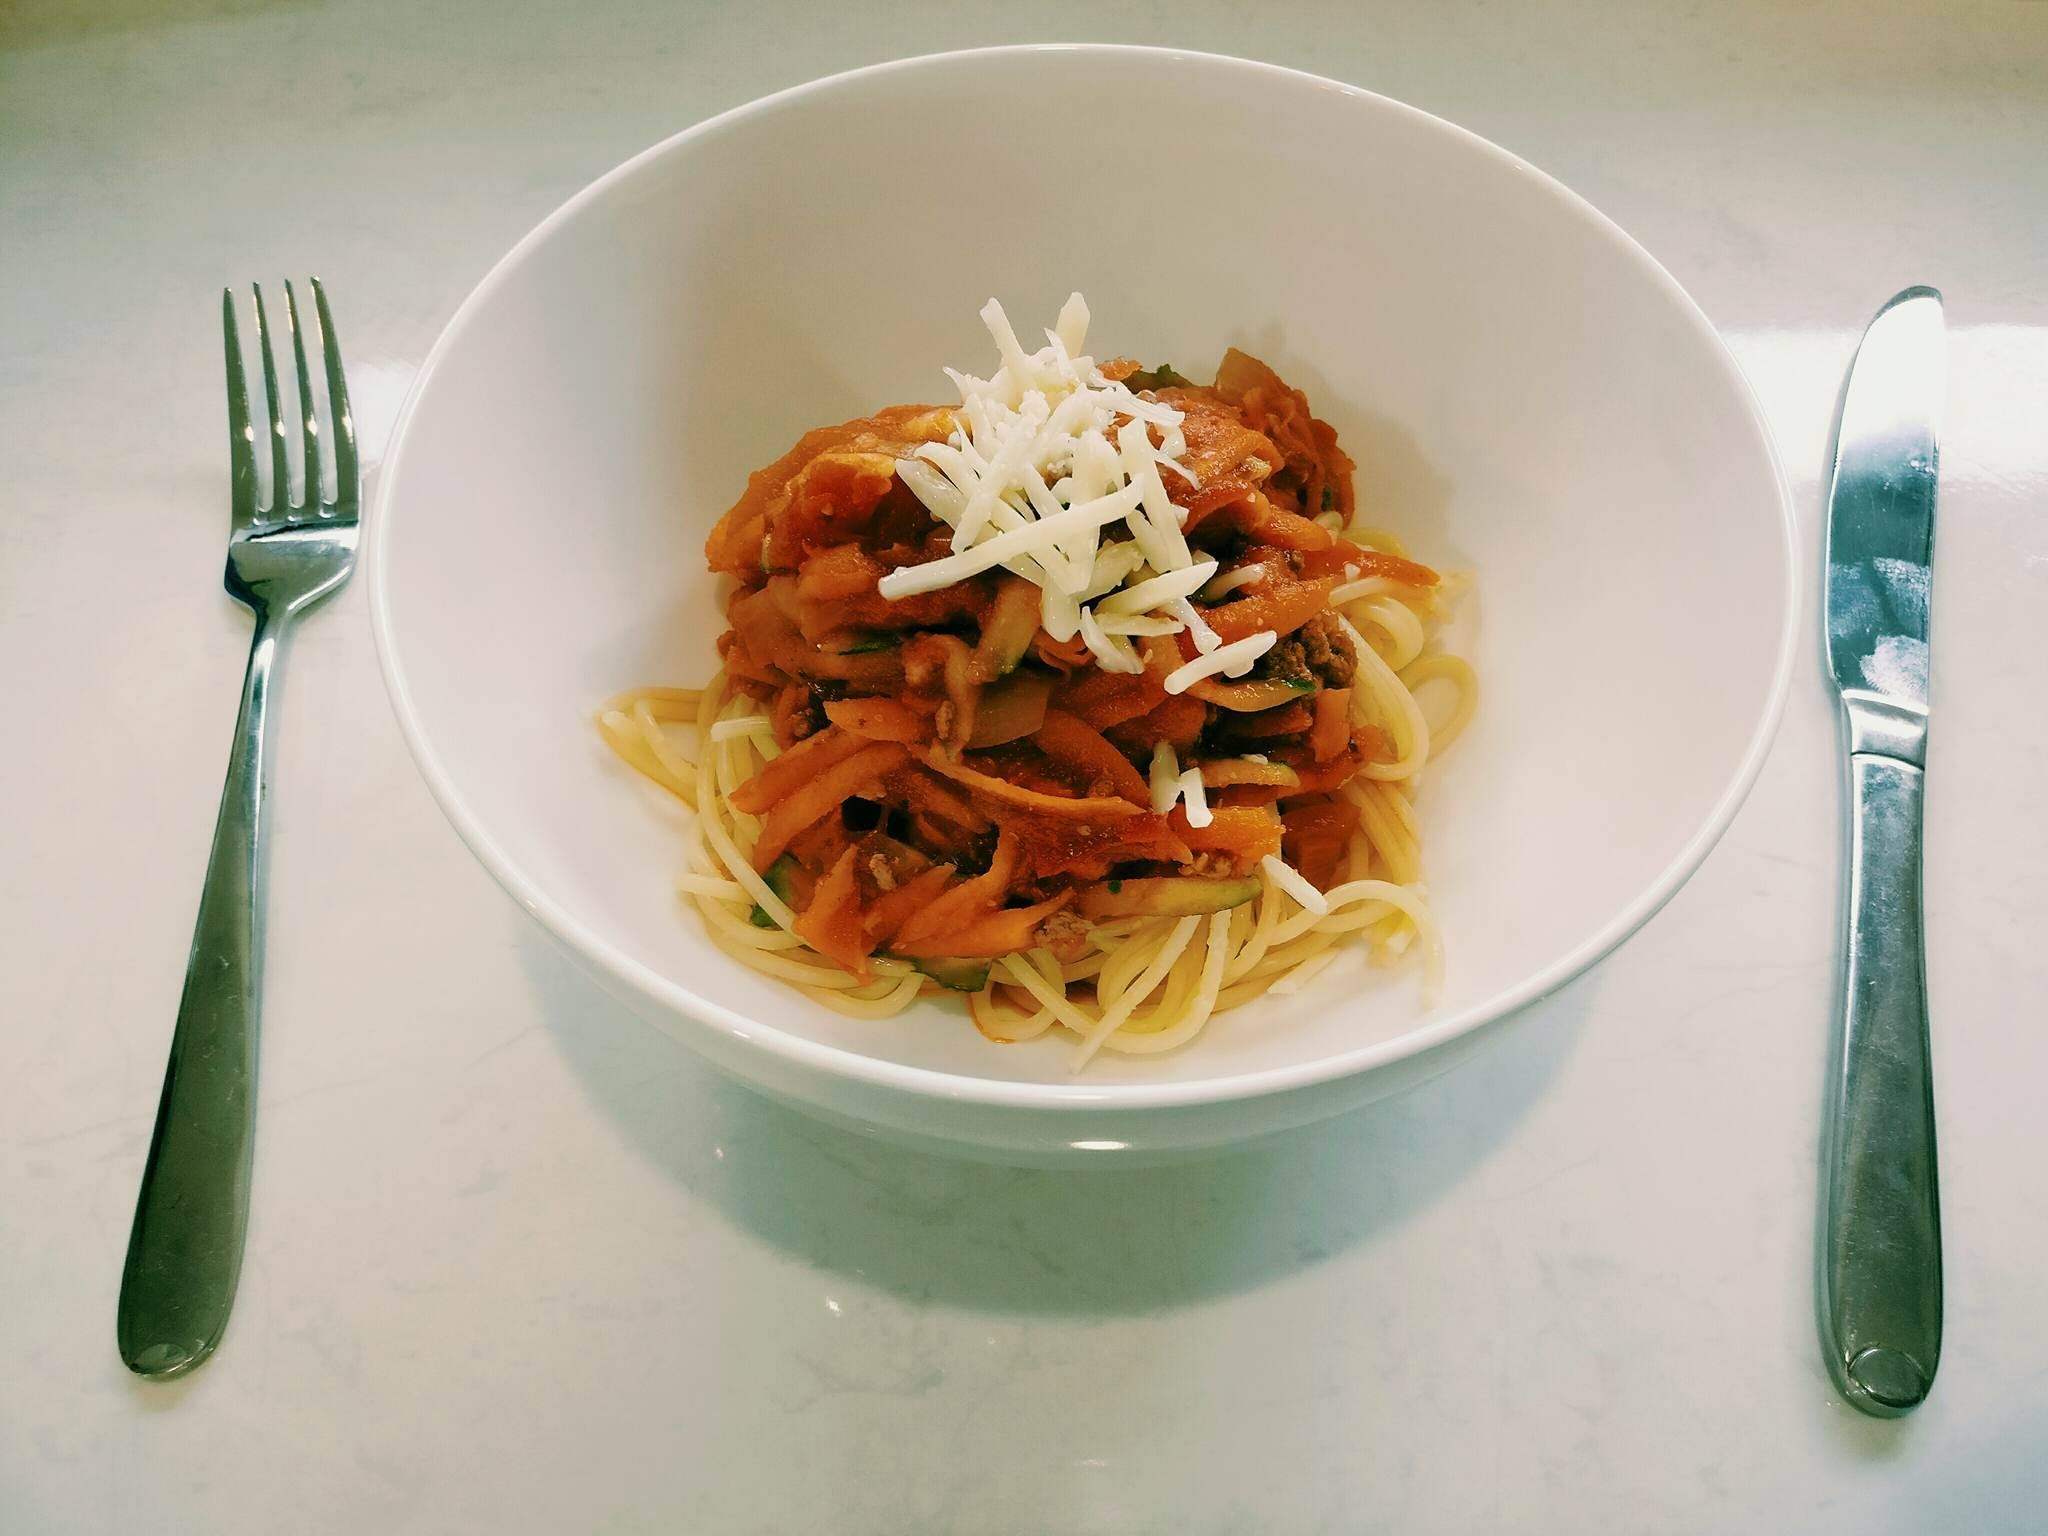 Spaghetti Bolognaise - Ingredients500g Dried Spaghetti300g Prime Beef Mince1 Onion - Diced3 Carrots - Grated1 Zuccini - Grated1x Tin Diced Tomatoes1x Jar Pasta SauceCheese (optional)Method1. Brown the mince and onion in a large frying pan2. Add the carrot and zuccini to the cooked mince and onion,cook through for 2-3 minutes3. Add the tinned tomatoes and pasta sauce, simmer until the sauce reduces4. Cook the dried spaghetti according to packed directions5. Serve mince mixture on top of cooked spaghetti and top with cheese (if using